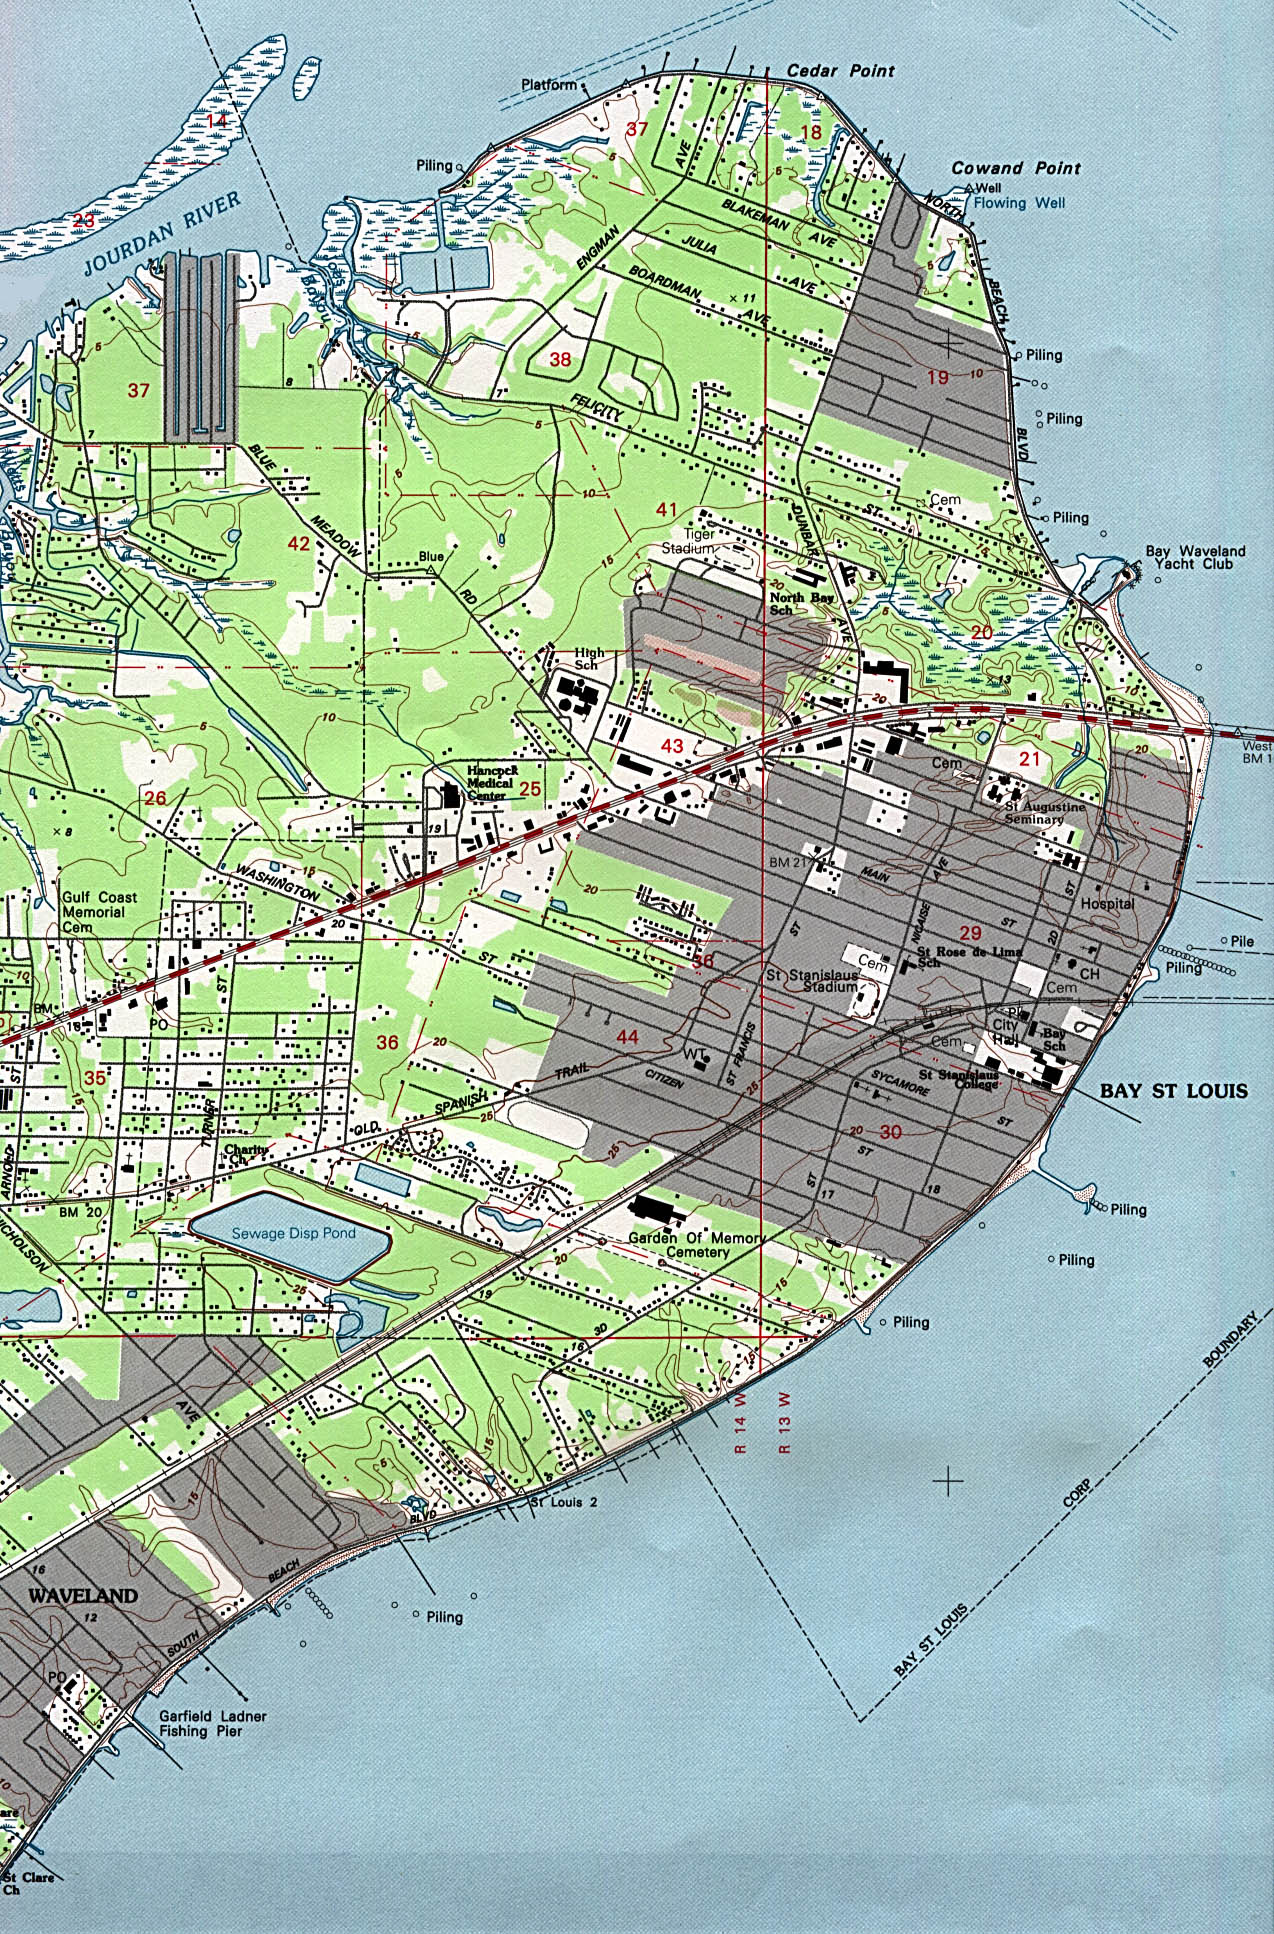 Map Of Bay St Louis Mississippi Mississippi Maps   Perry Castañeda Map Collection   UT Library Online